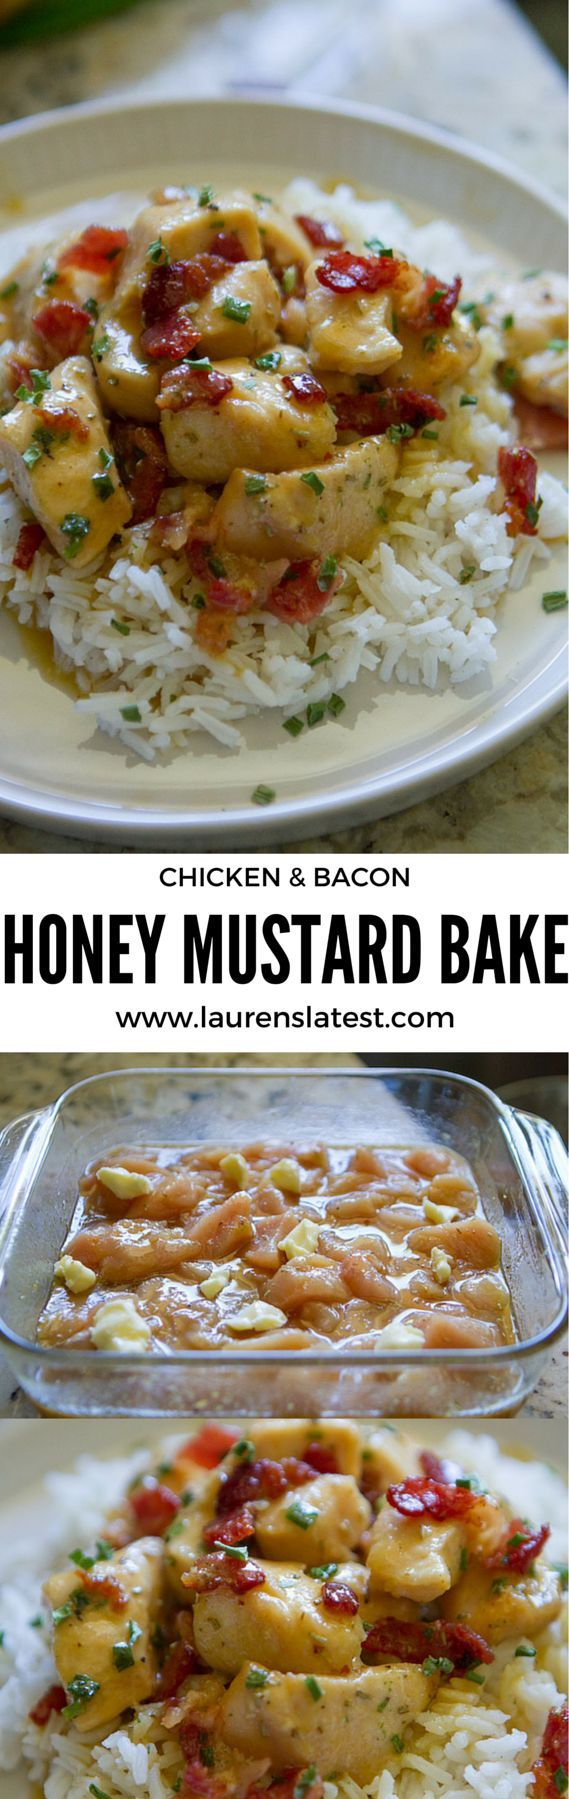 Baked Chicken With Honey-Whole Grain Mustard Glaze Recipe ...